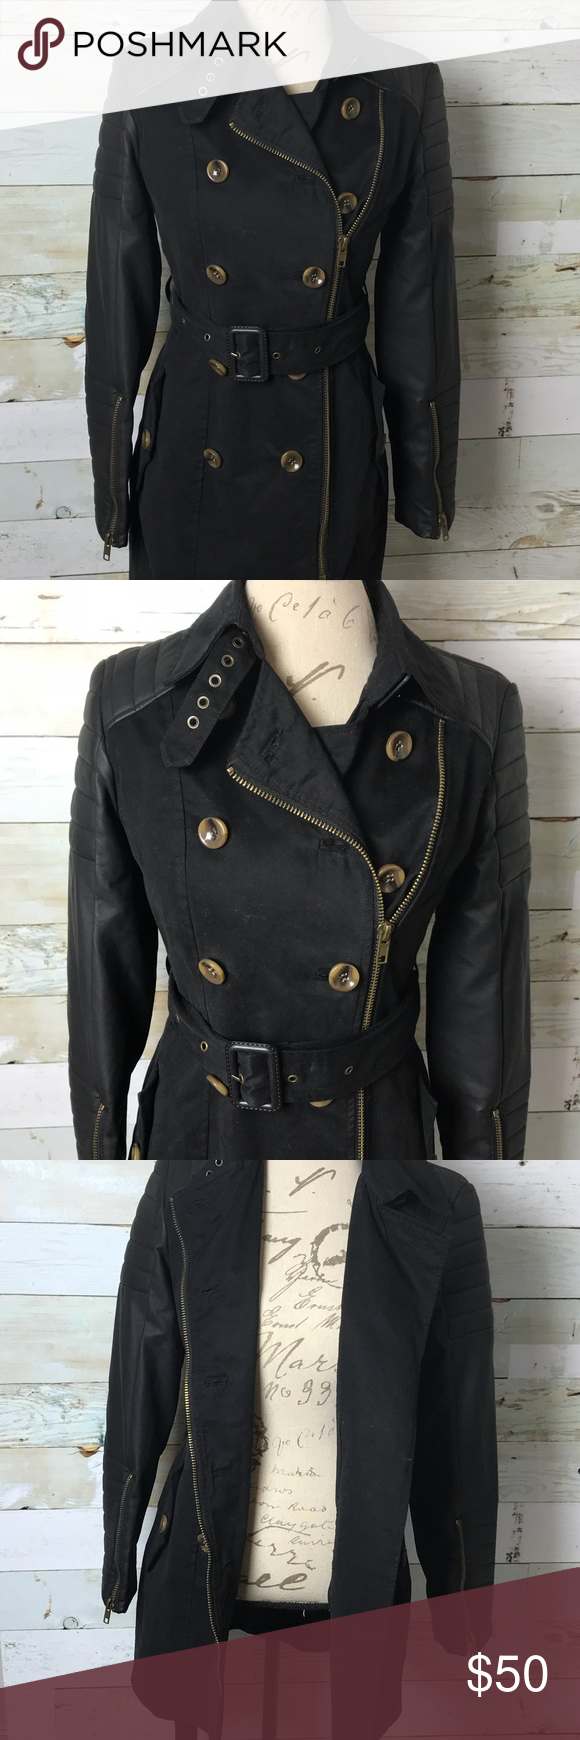 motorcycle style trench jacket faux leather Trench